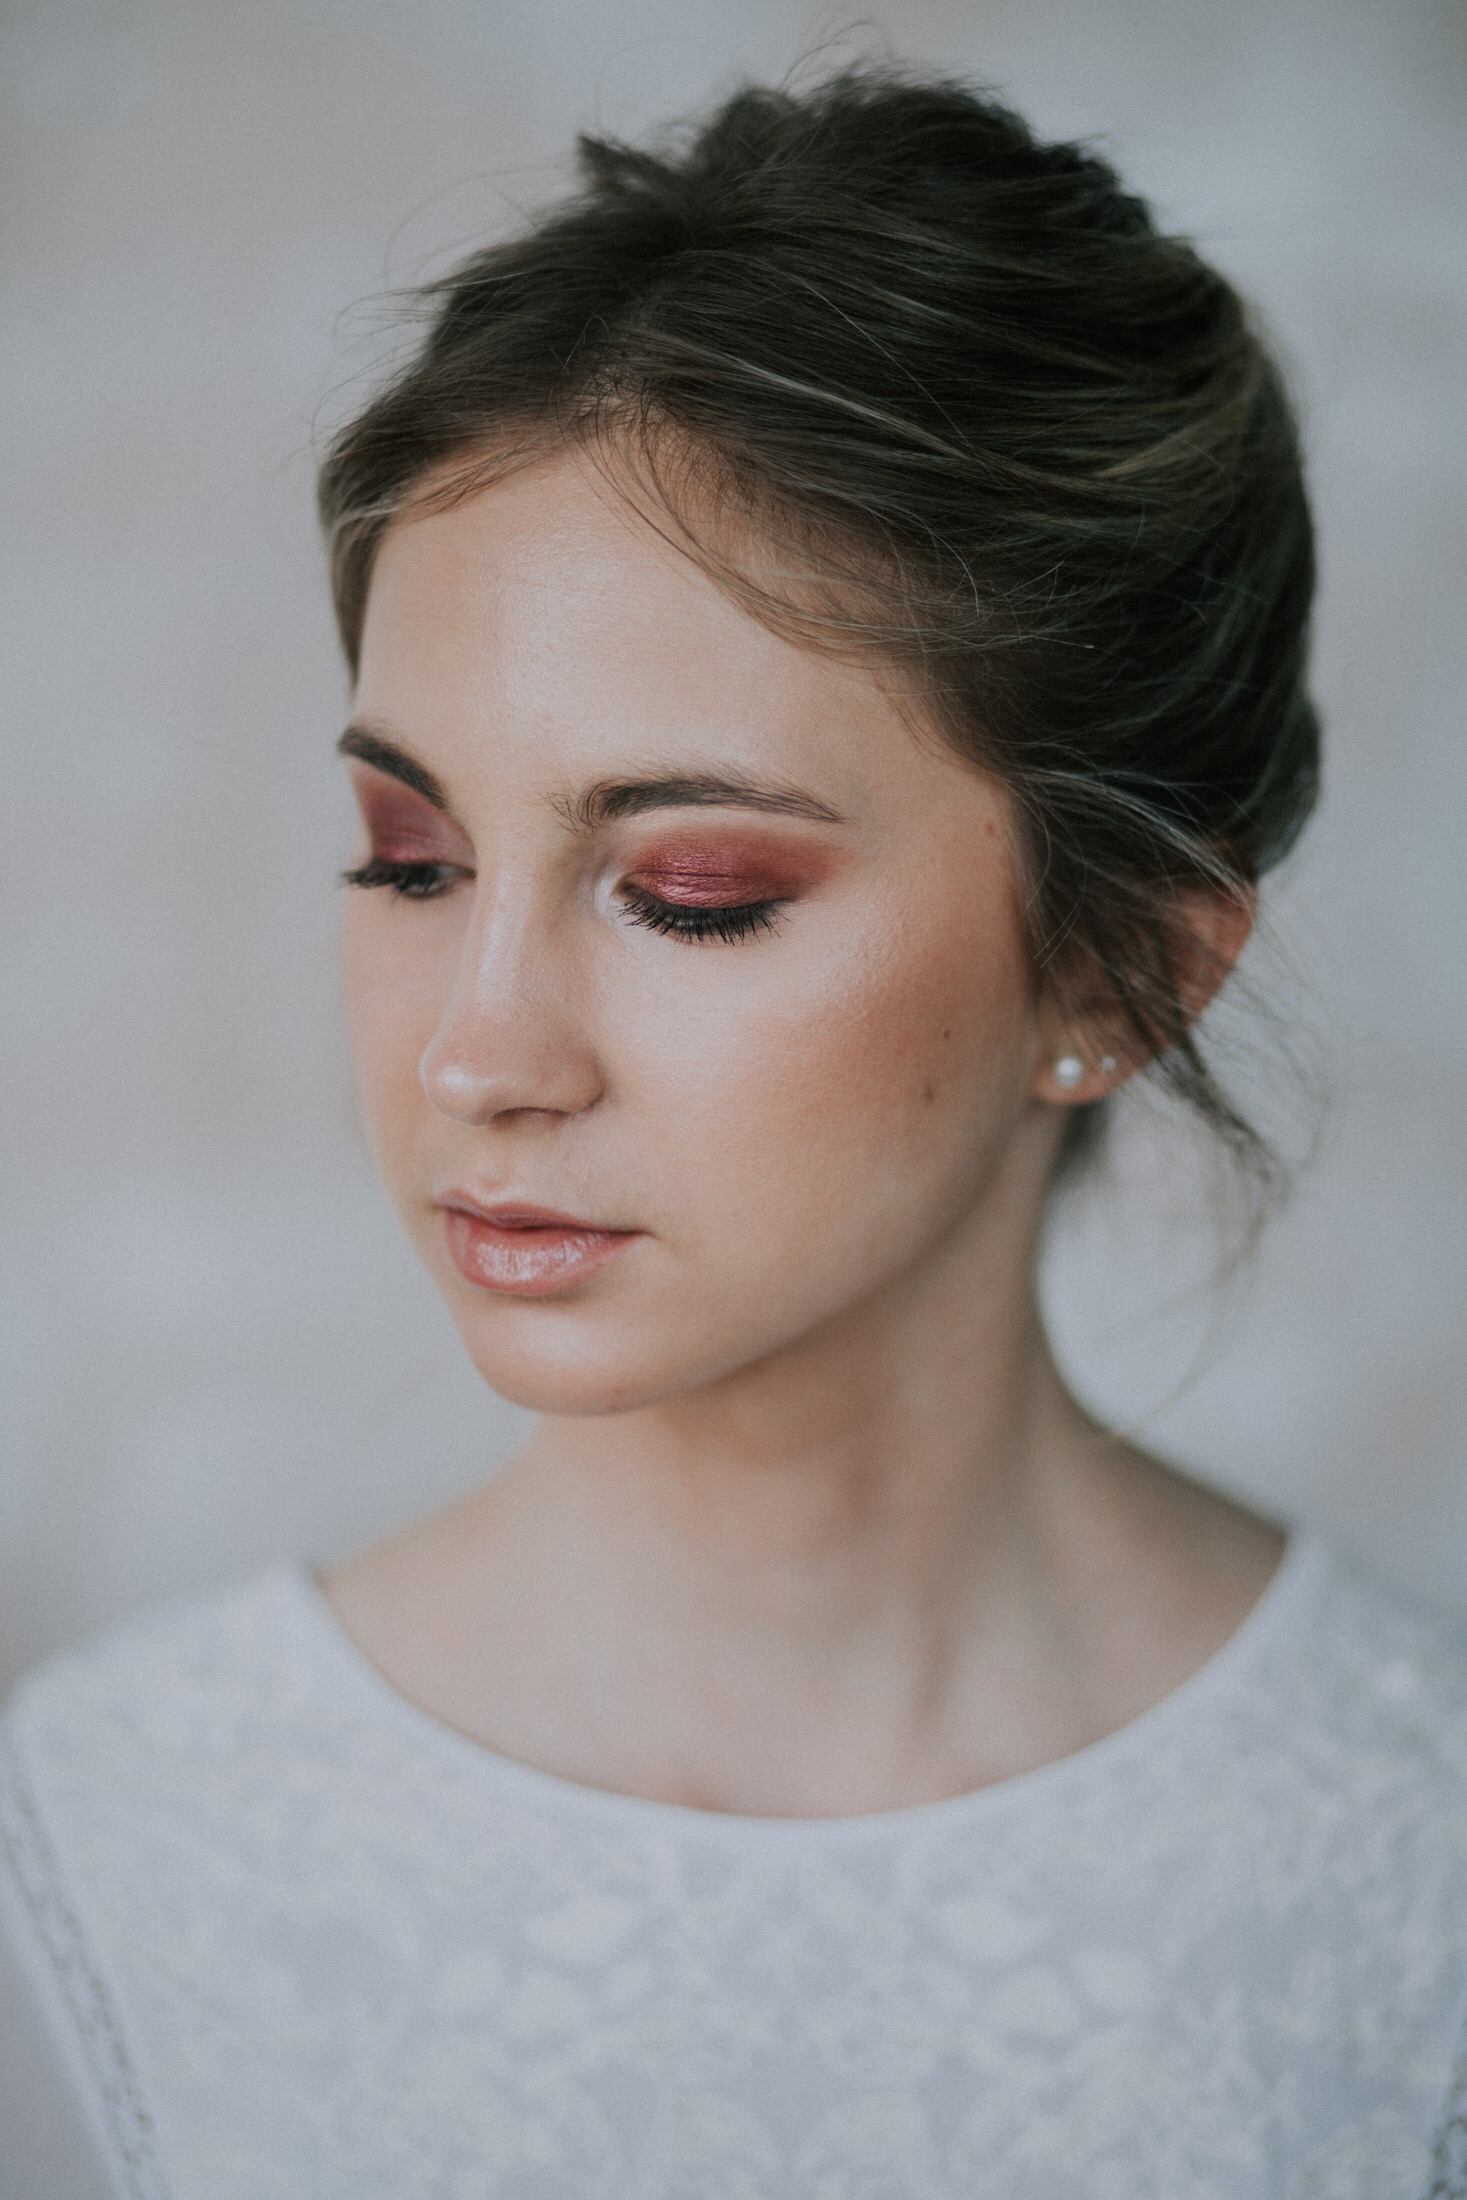 Colourful bridal makeup